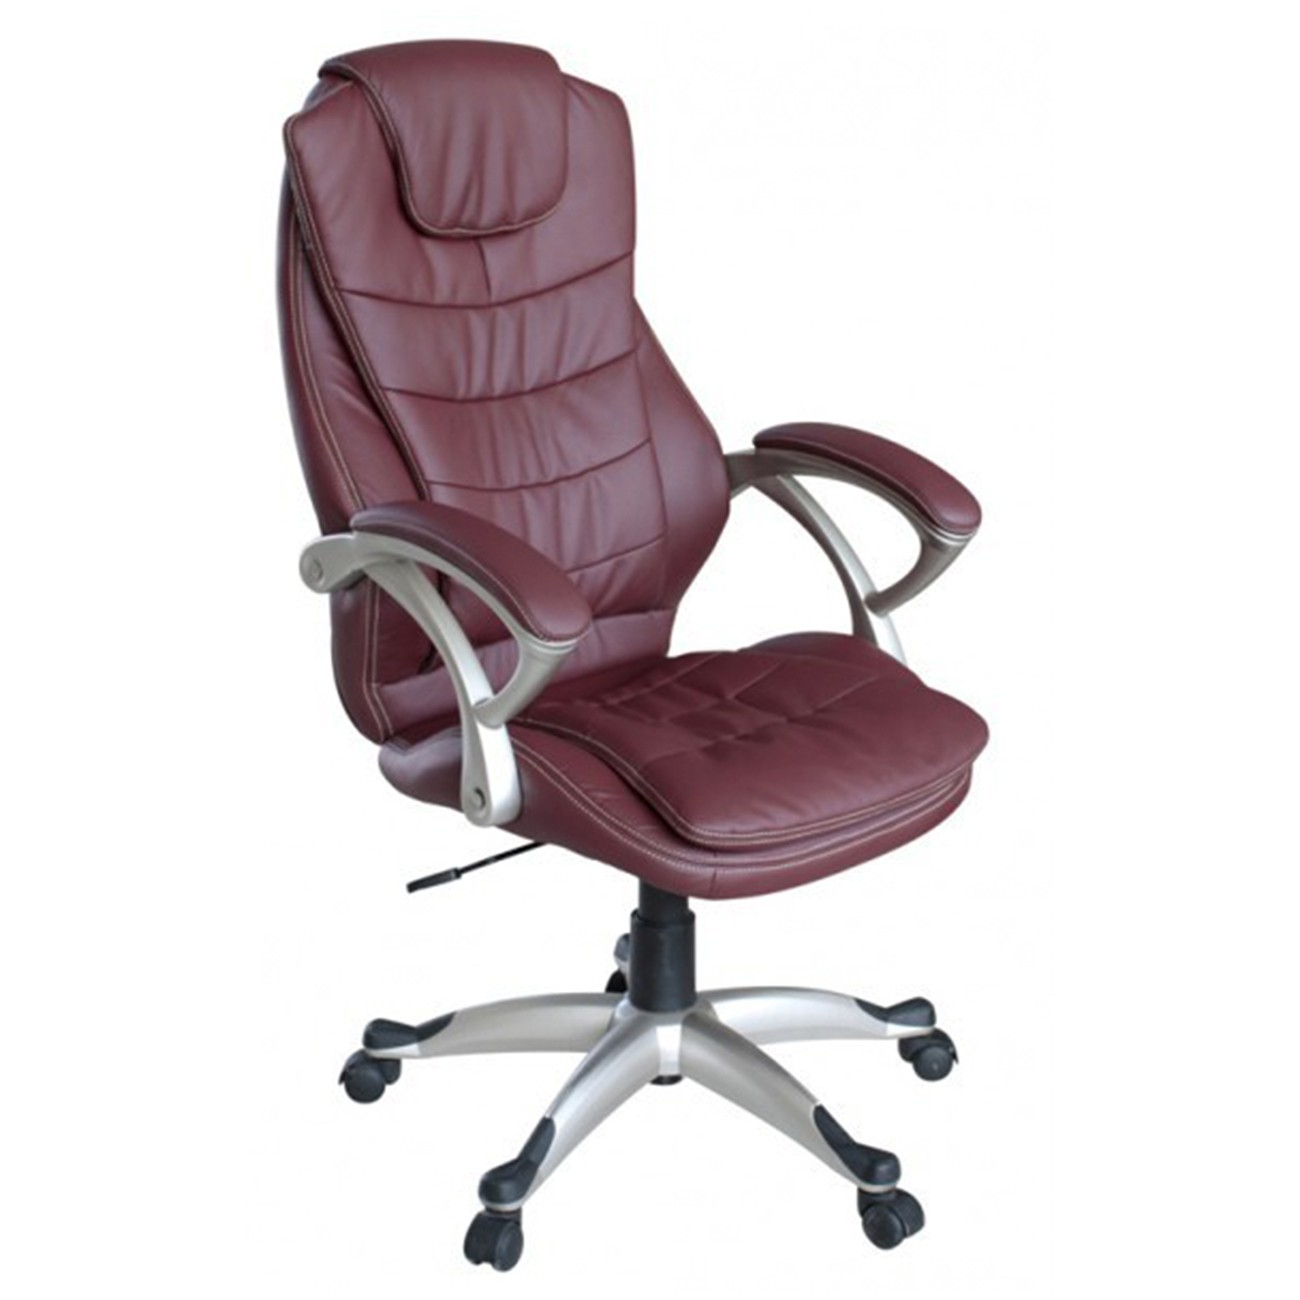 Fantastic My Sit Office Chair Chicago Deluxe Faux Leather In Burgundy Ma Trading Machost Co Dining Chair Design Ideas Machostcouk